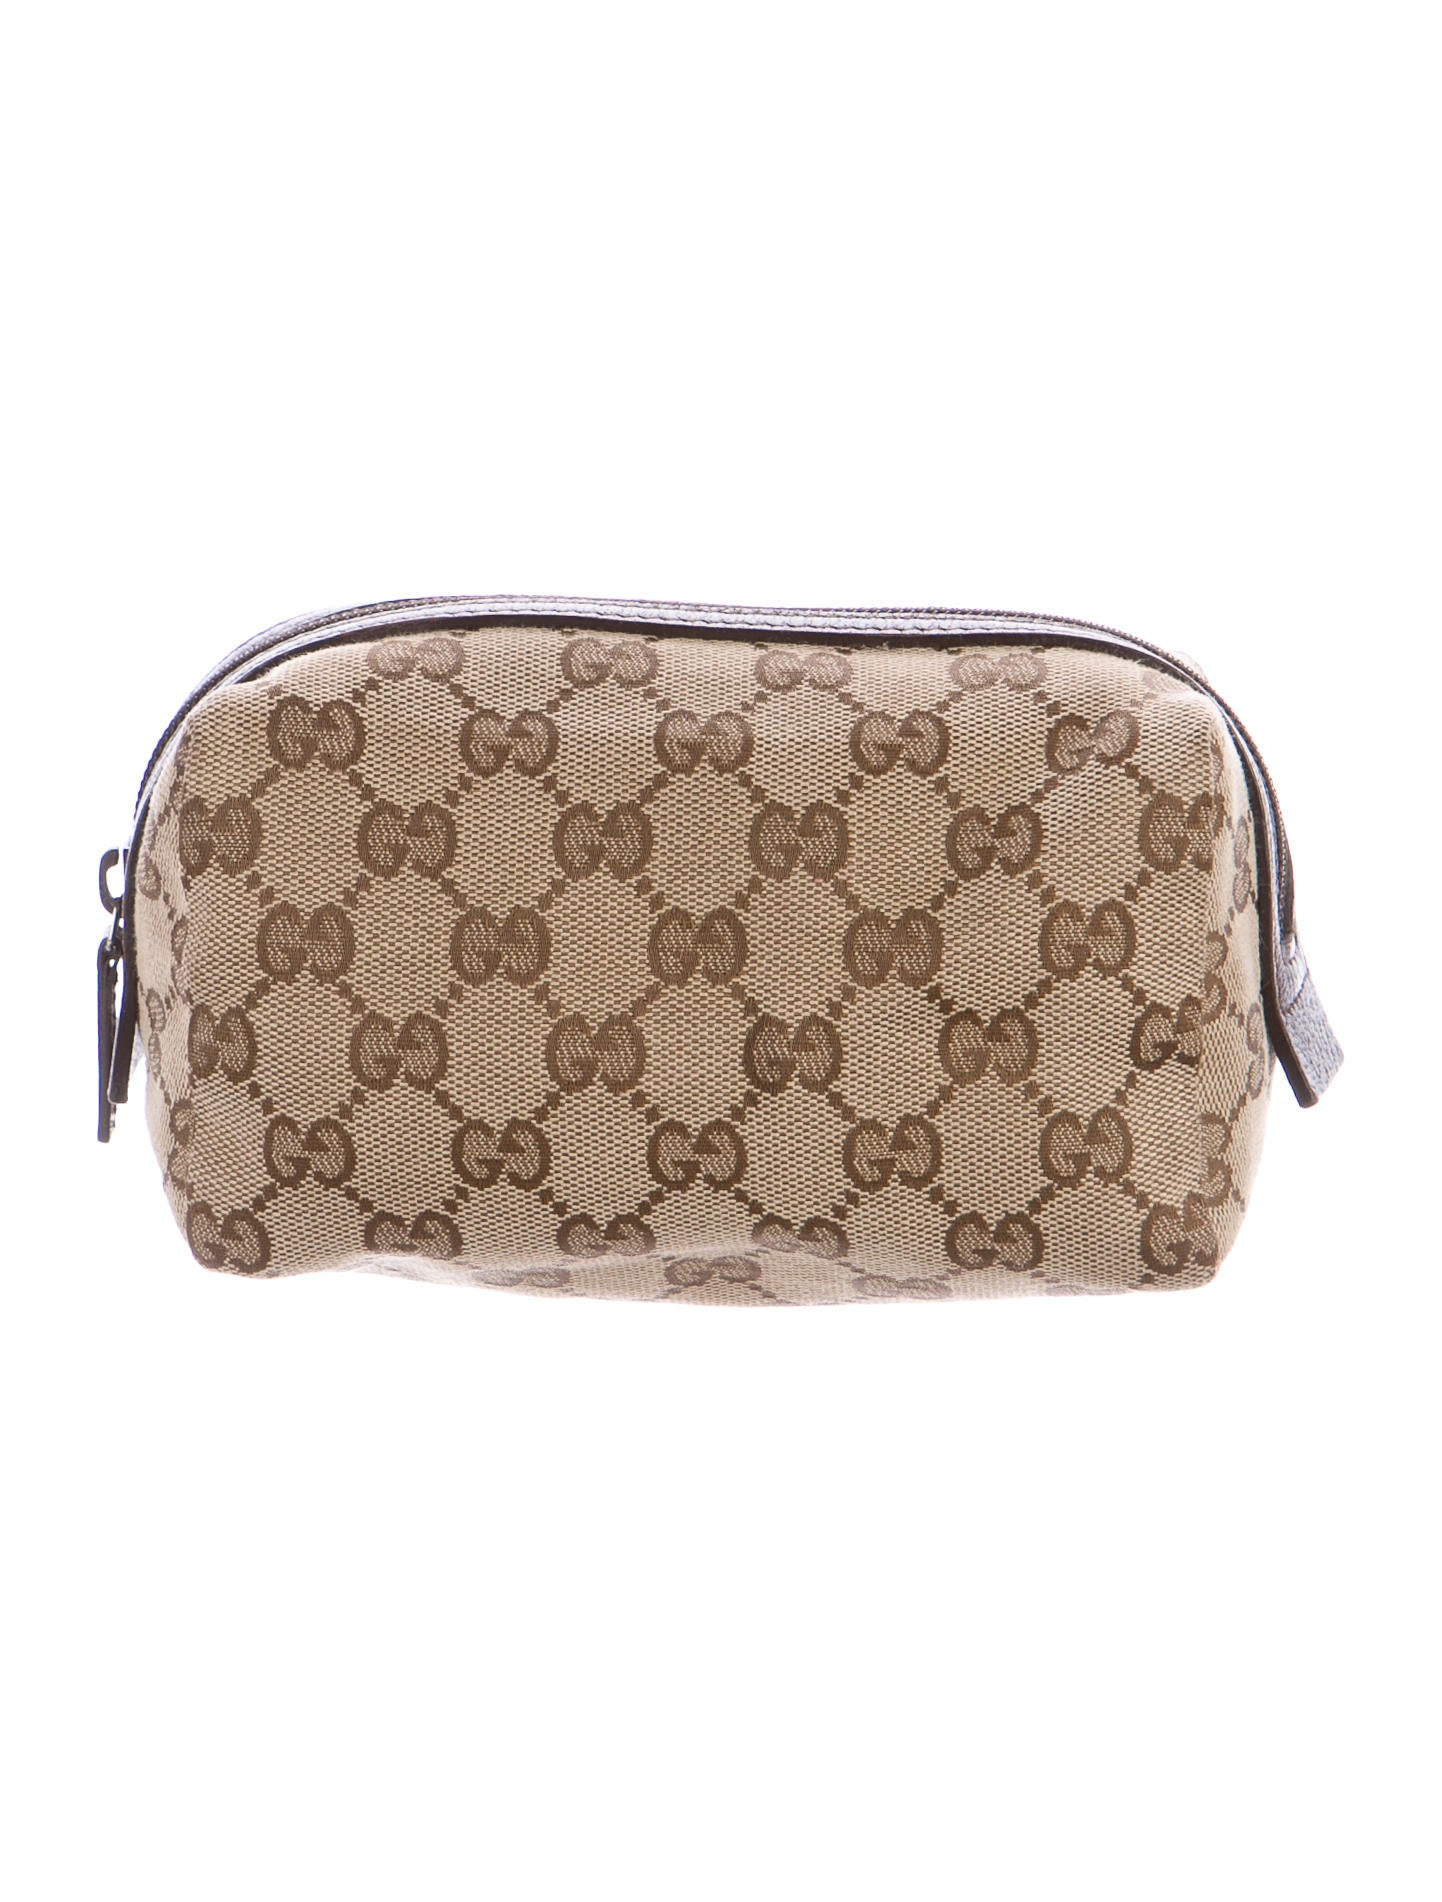 a85aeebb6417de Gucci Designer Cosmetic Bags | Stanford Center for Opportunity ...